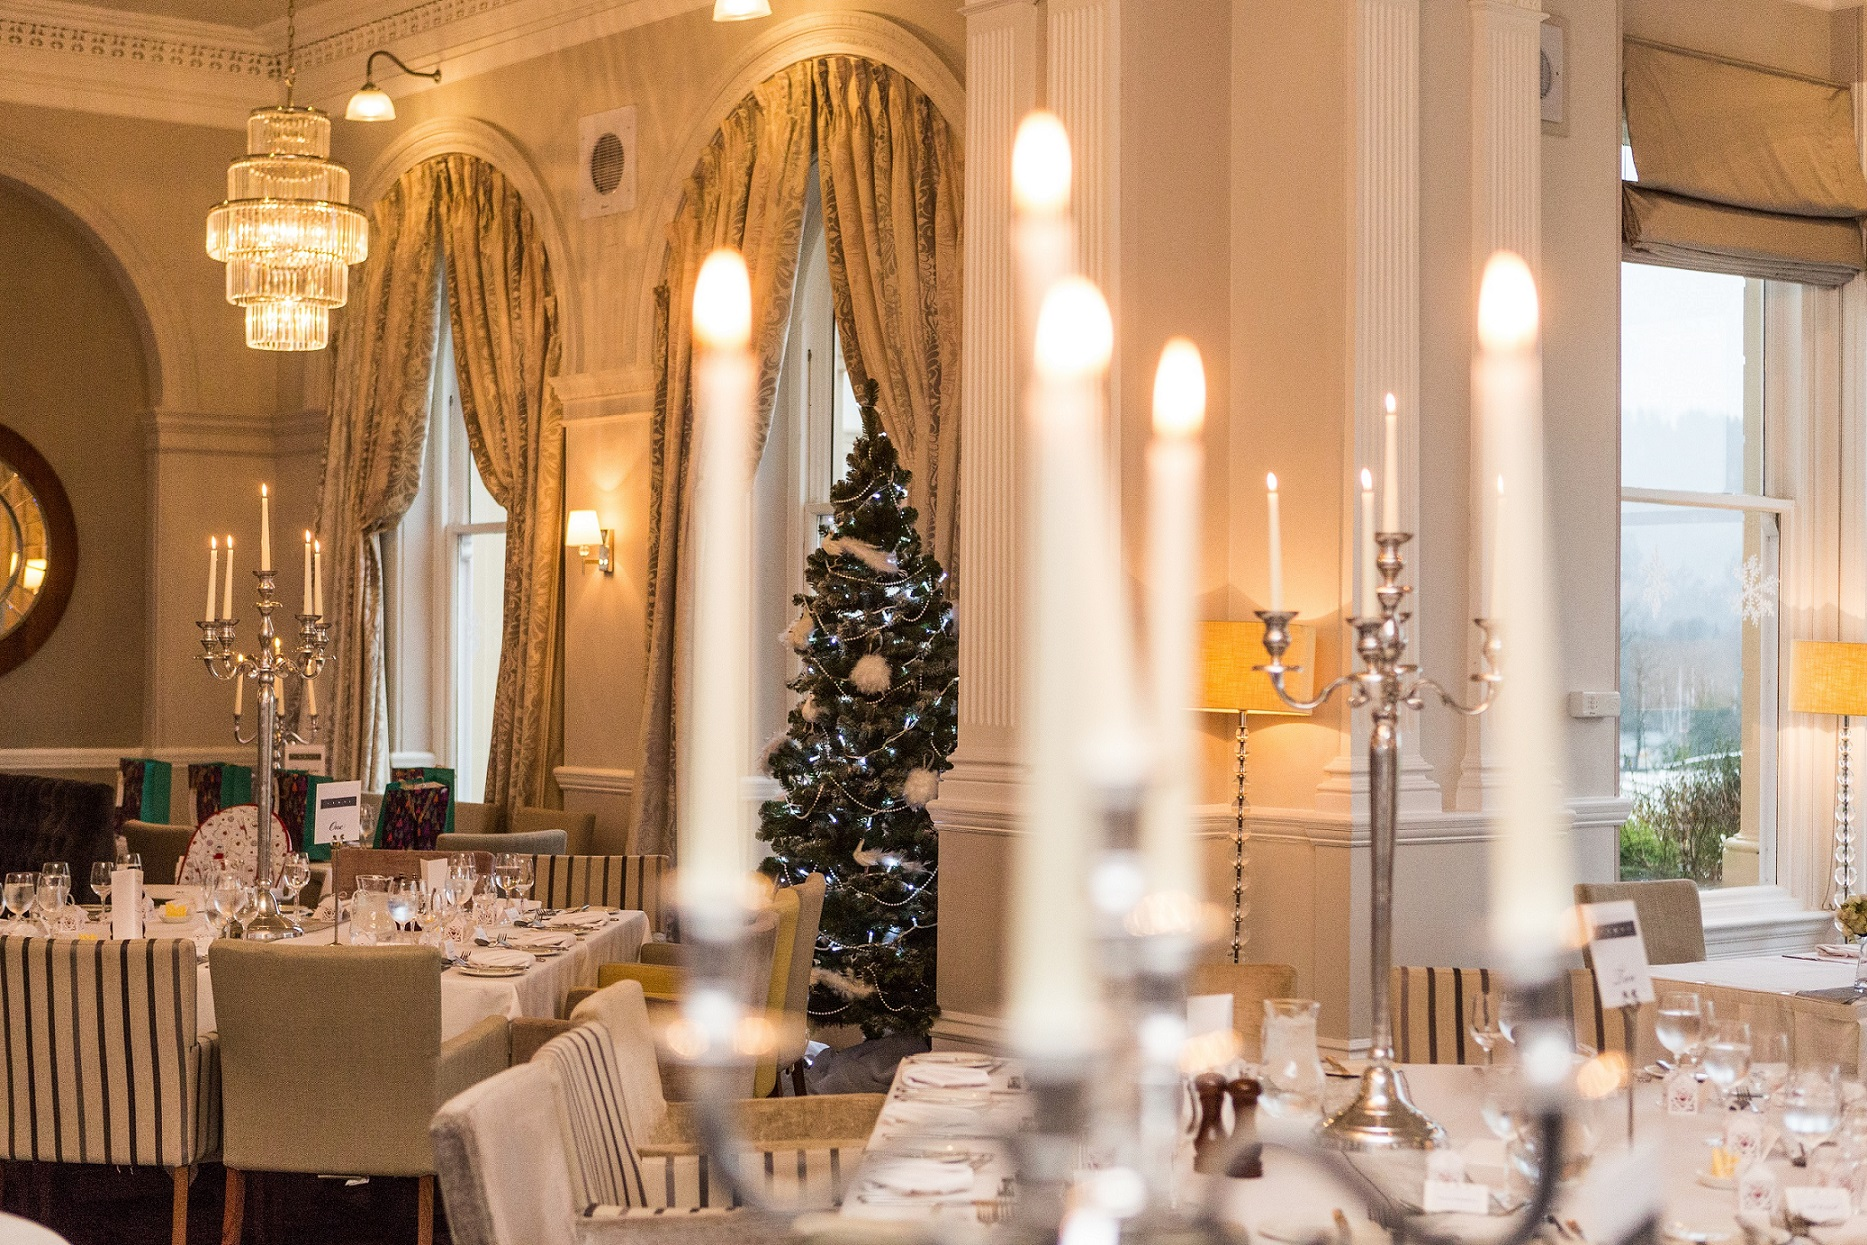 The Belsfield Hotel at Christmas